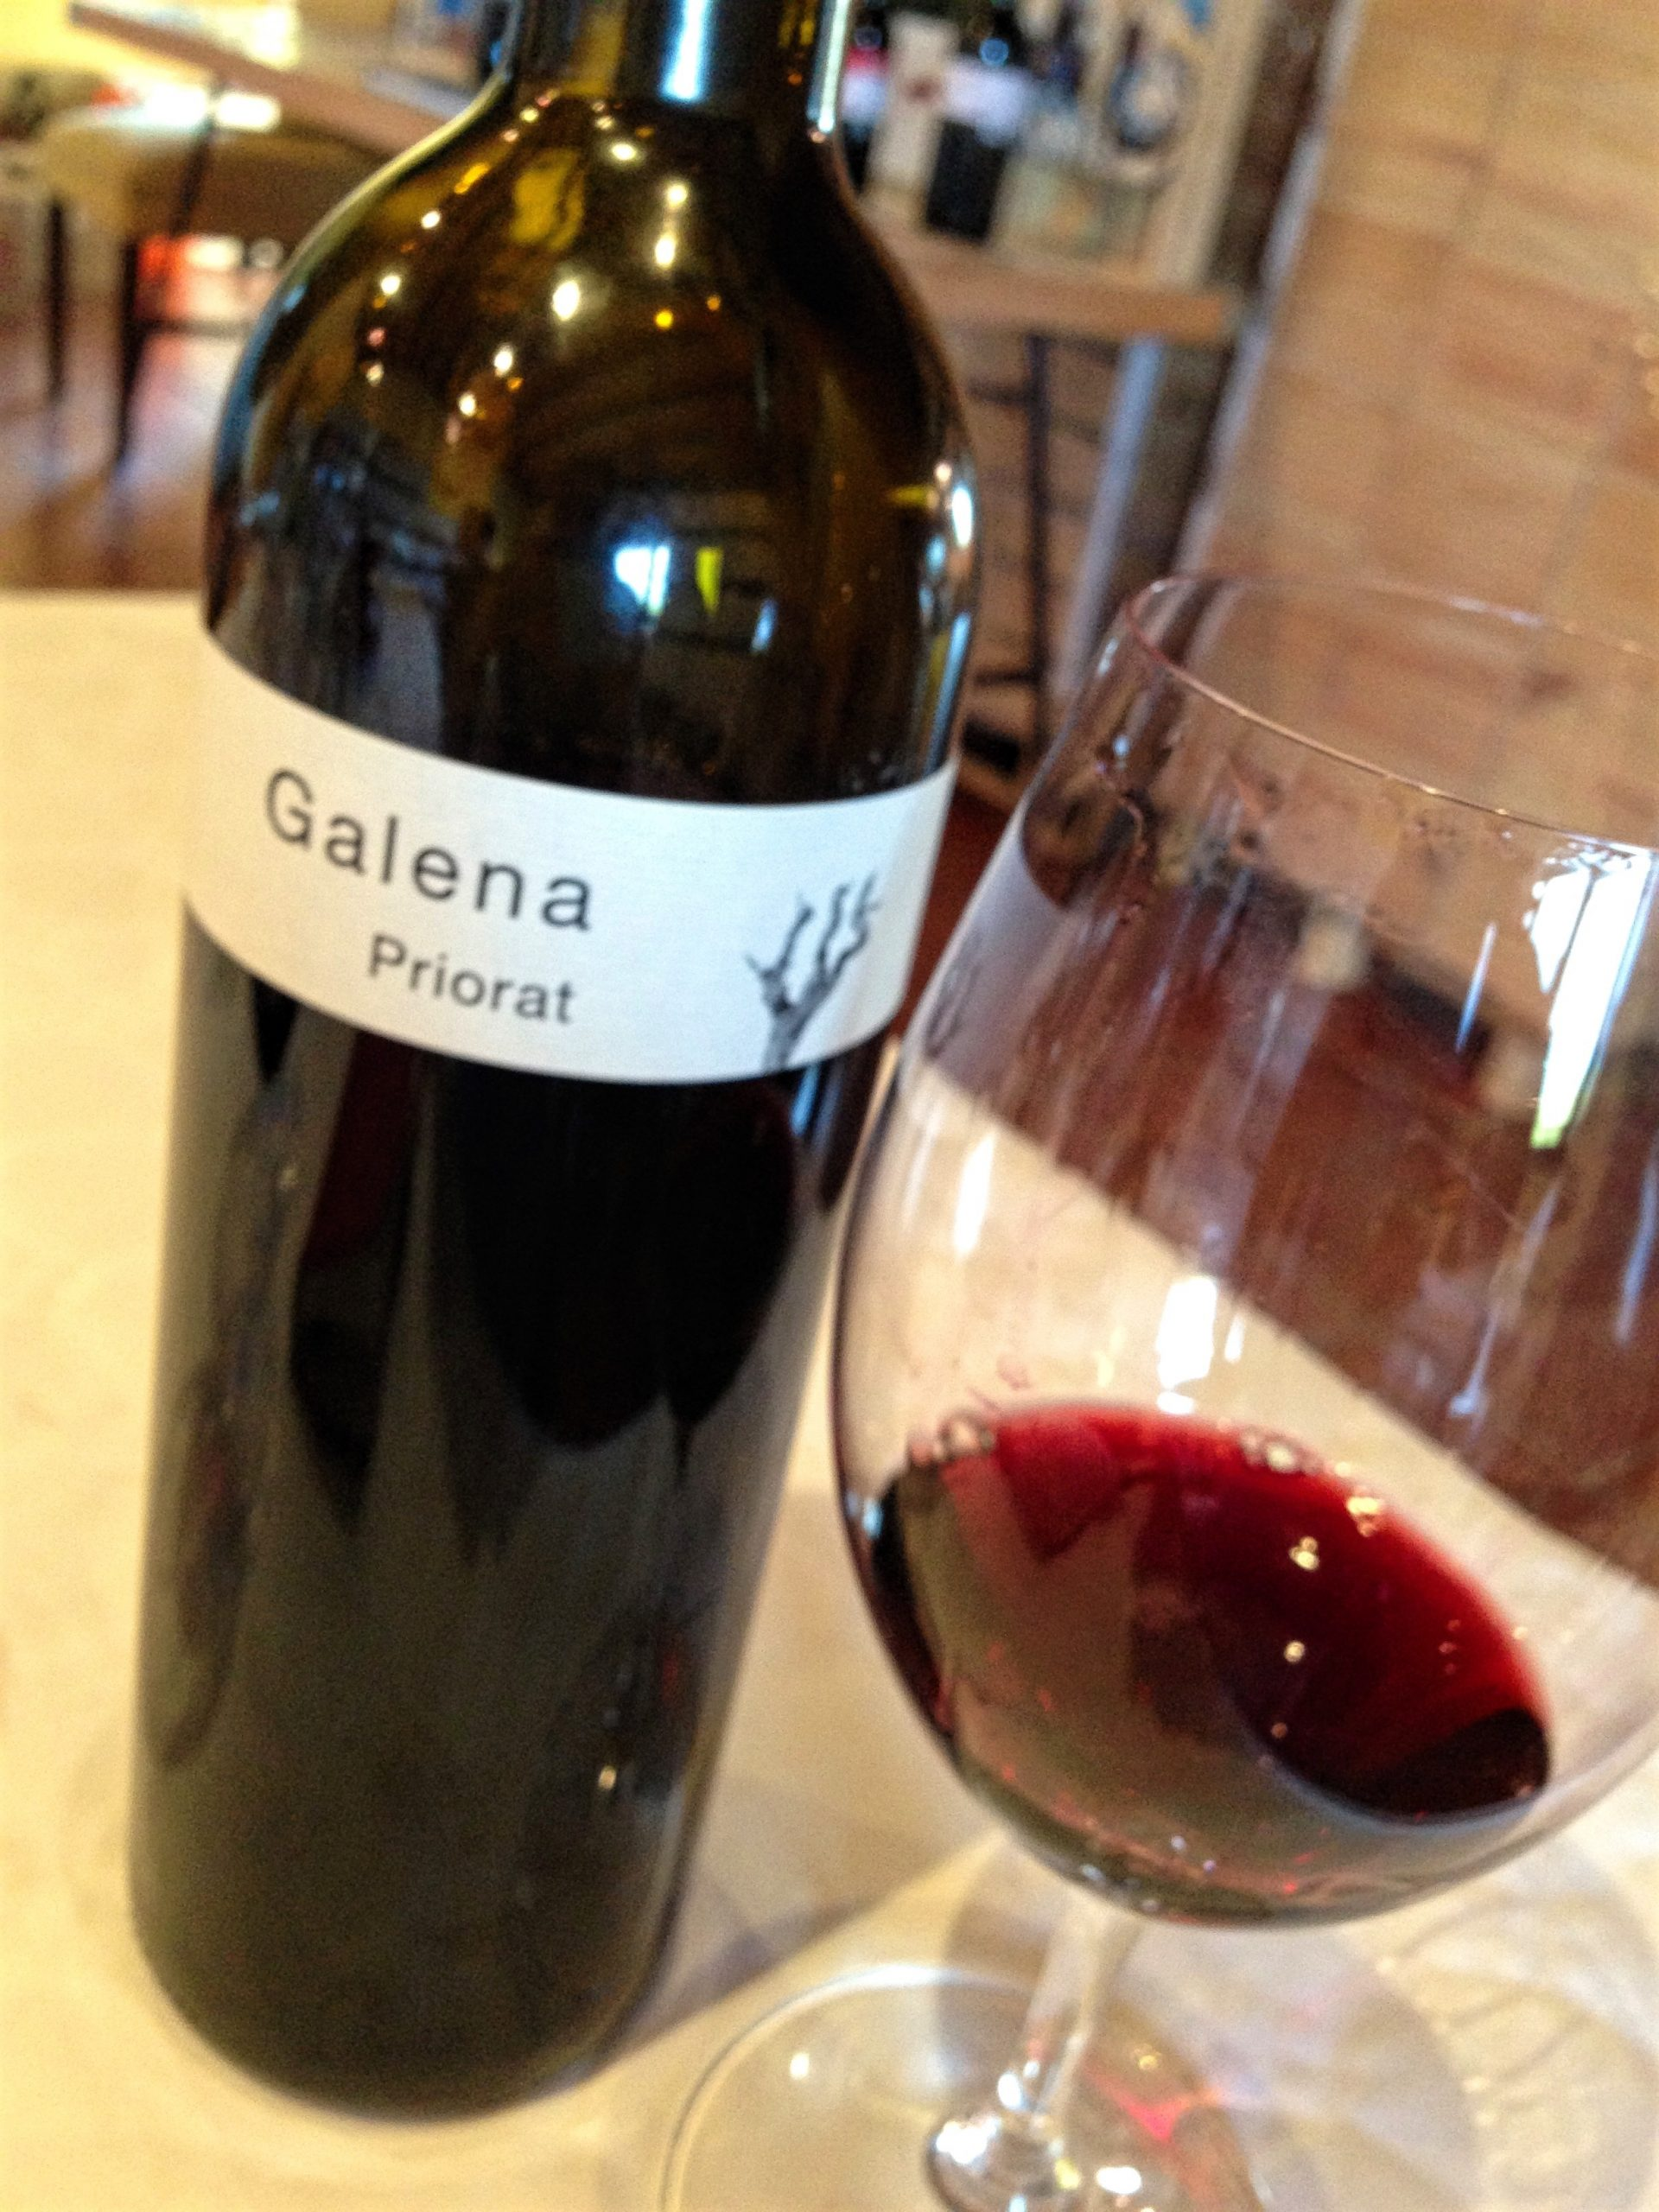 5 Things To Know About Priorat Wine